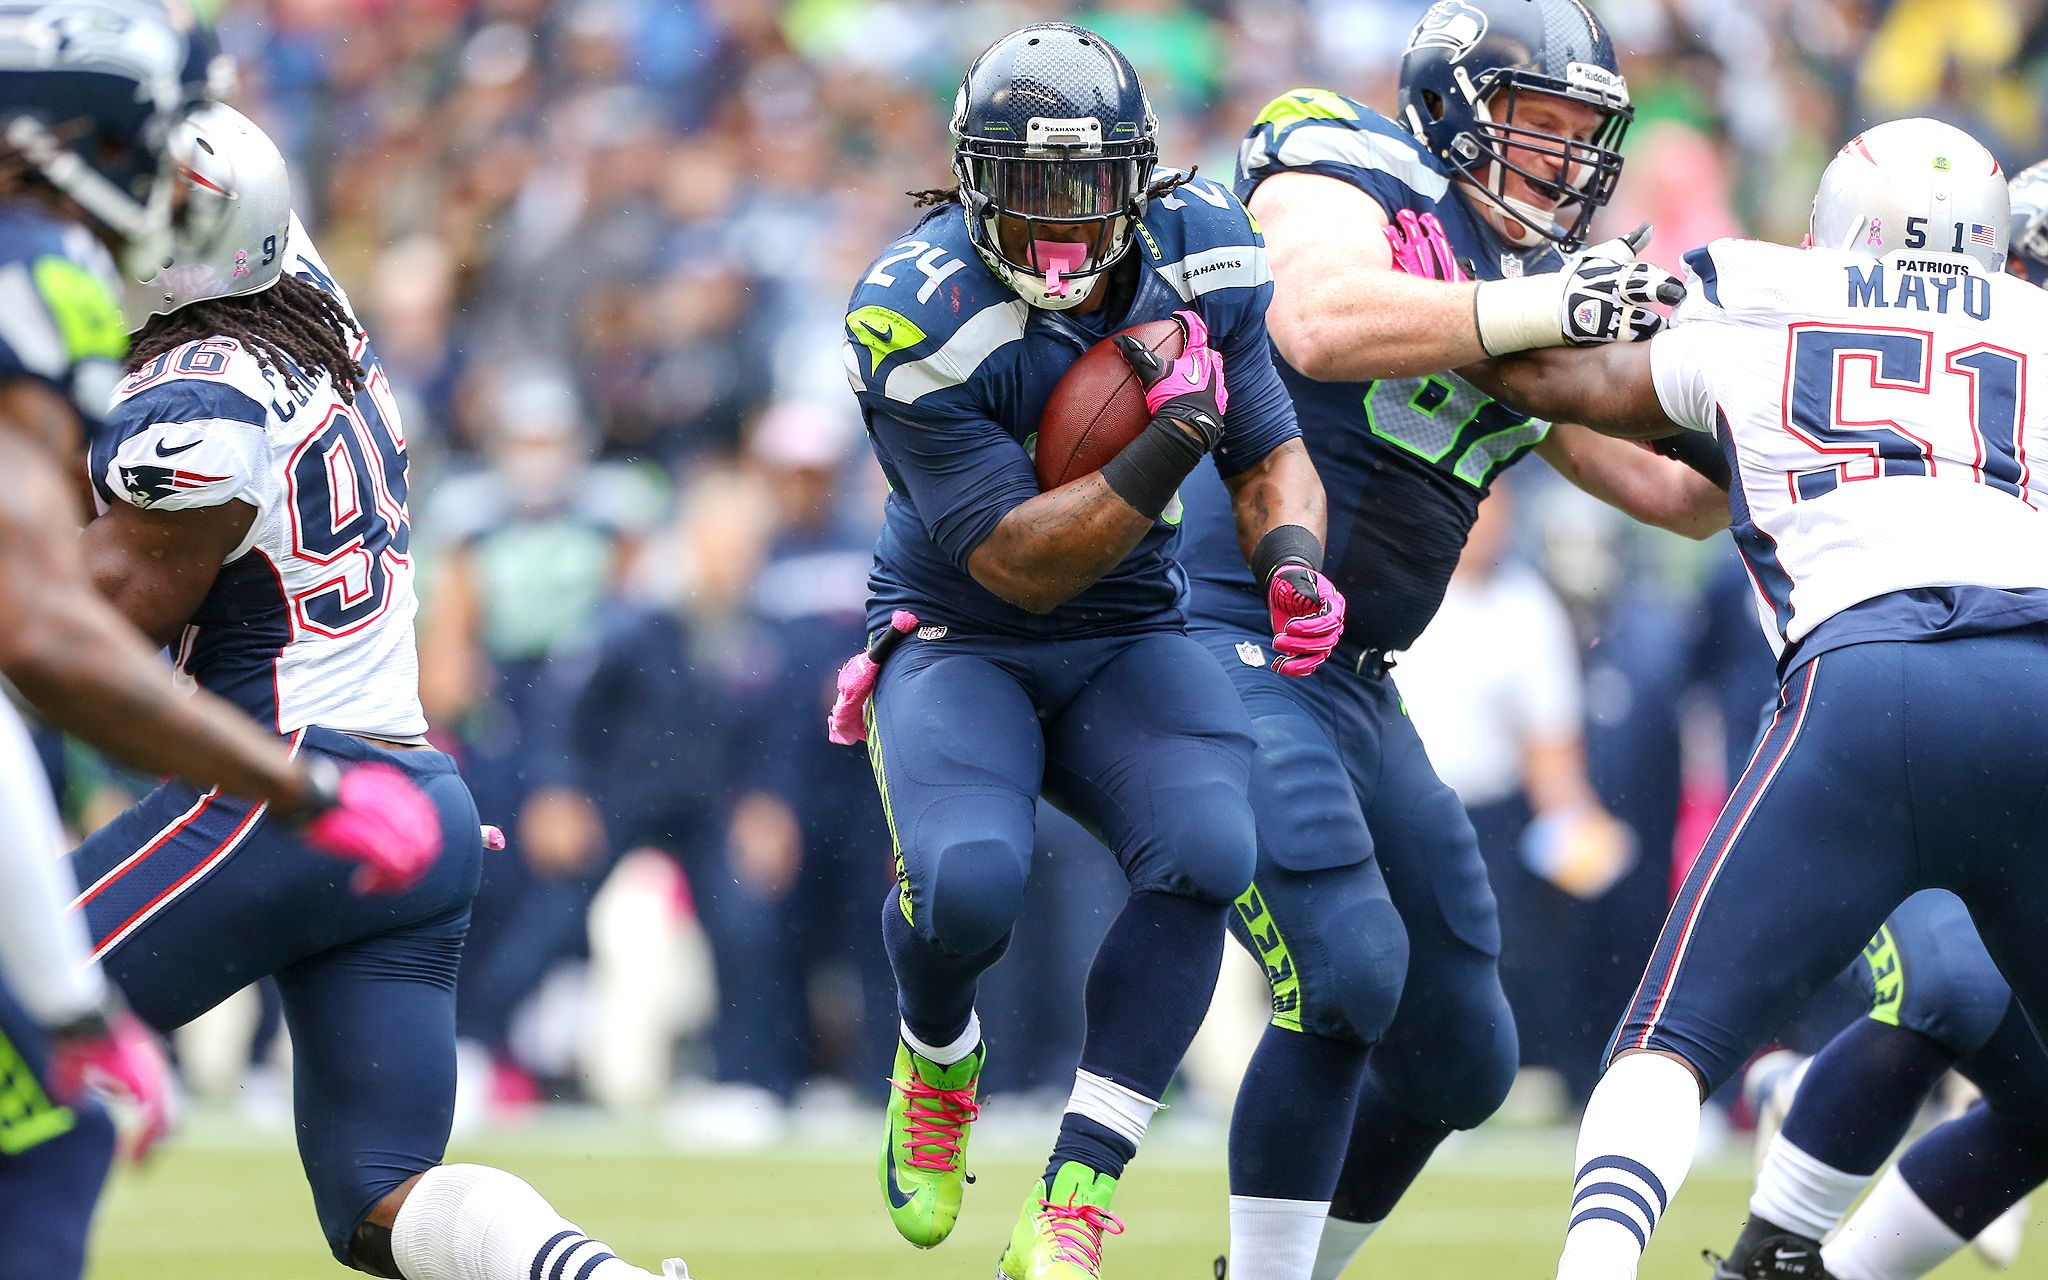 Nfl Week 6 Gallery Nfl Week Seattle Seahawks Seahawks Gear